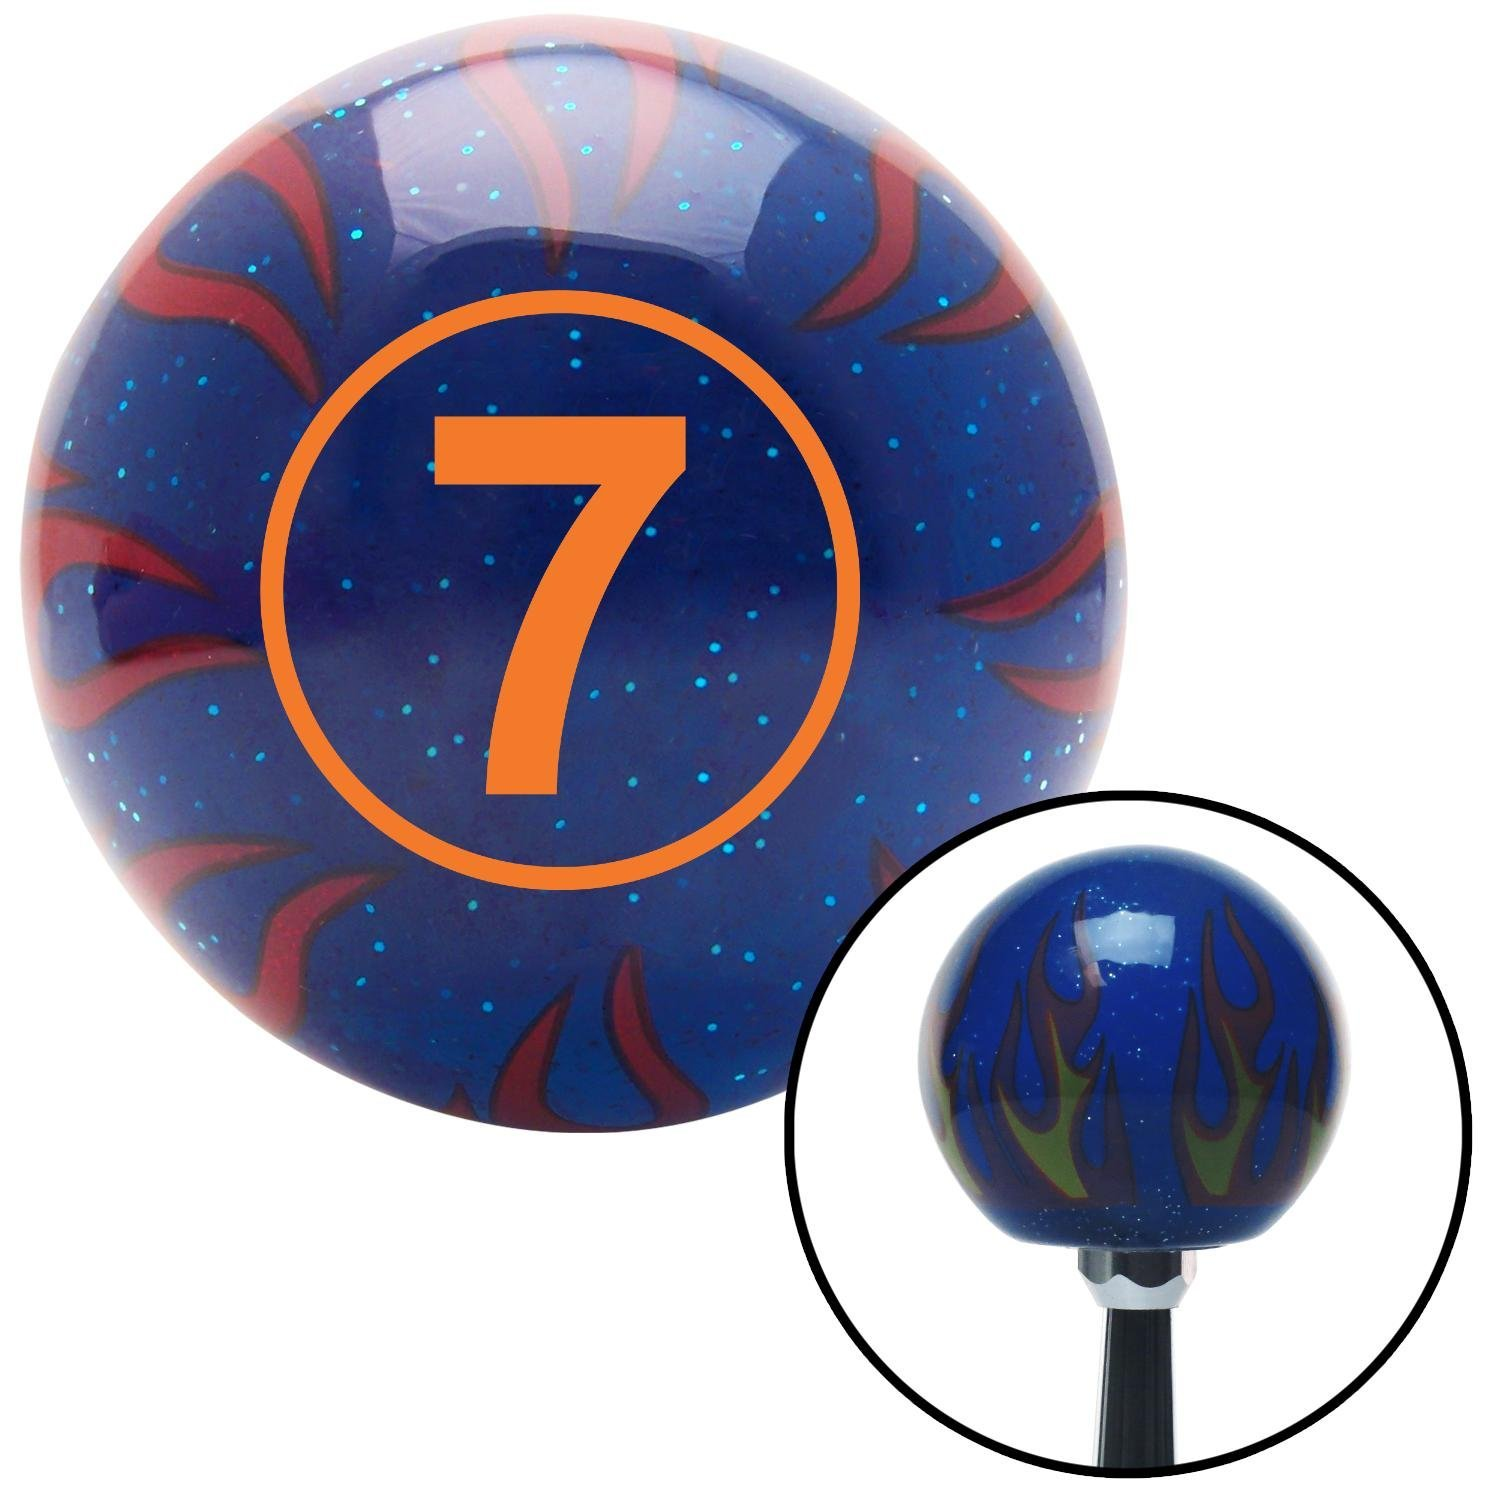 Orange Ball #7 American Shifter 244557 Blue Flame Metal Flake Shift Knob with M16 x 1.5 Insert